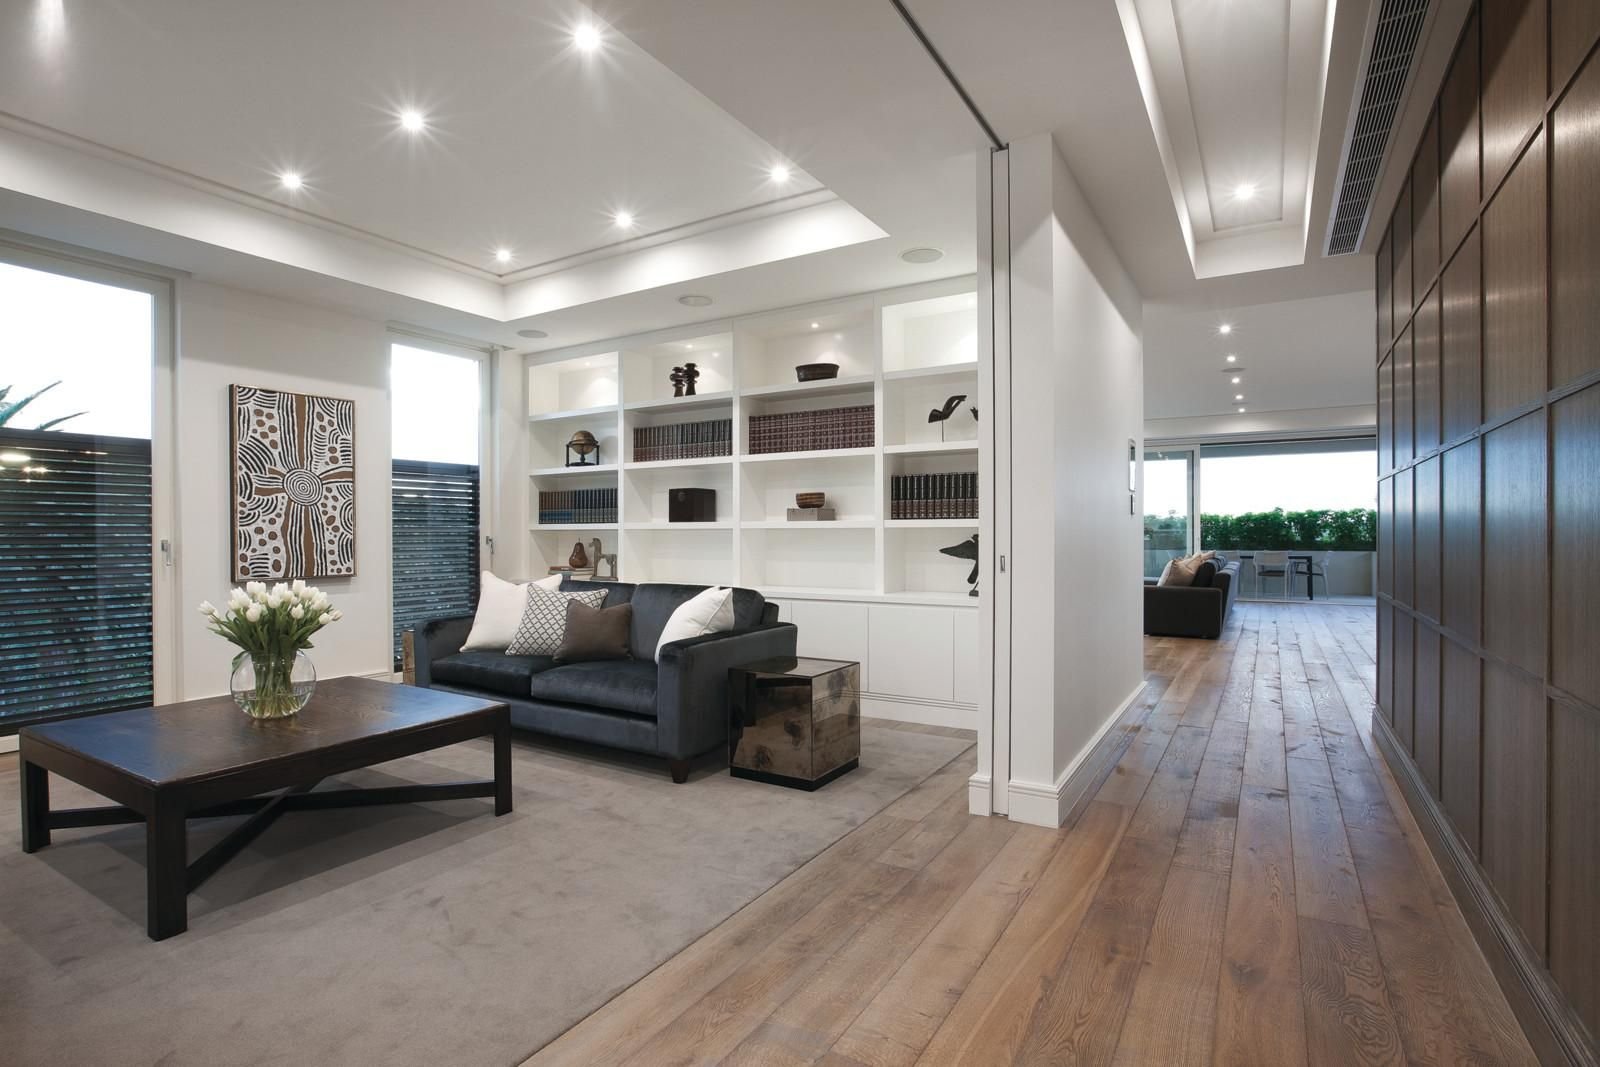 Duchateau Floors Installed At Subpenthouse 11 Copelen Street South Yarra Marshall White Duchateau Floors Basement Remodeling Farm House Living Room